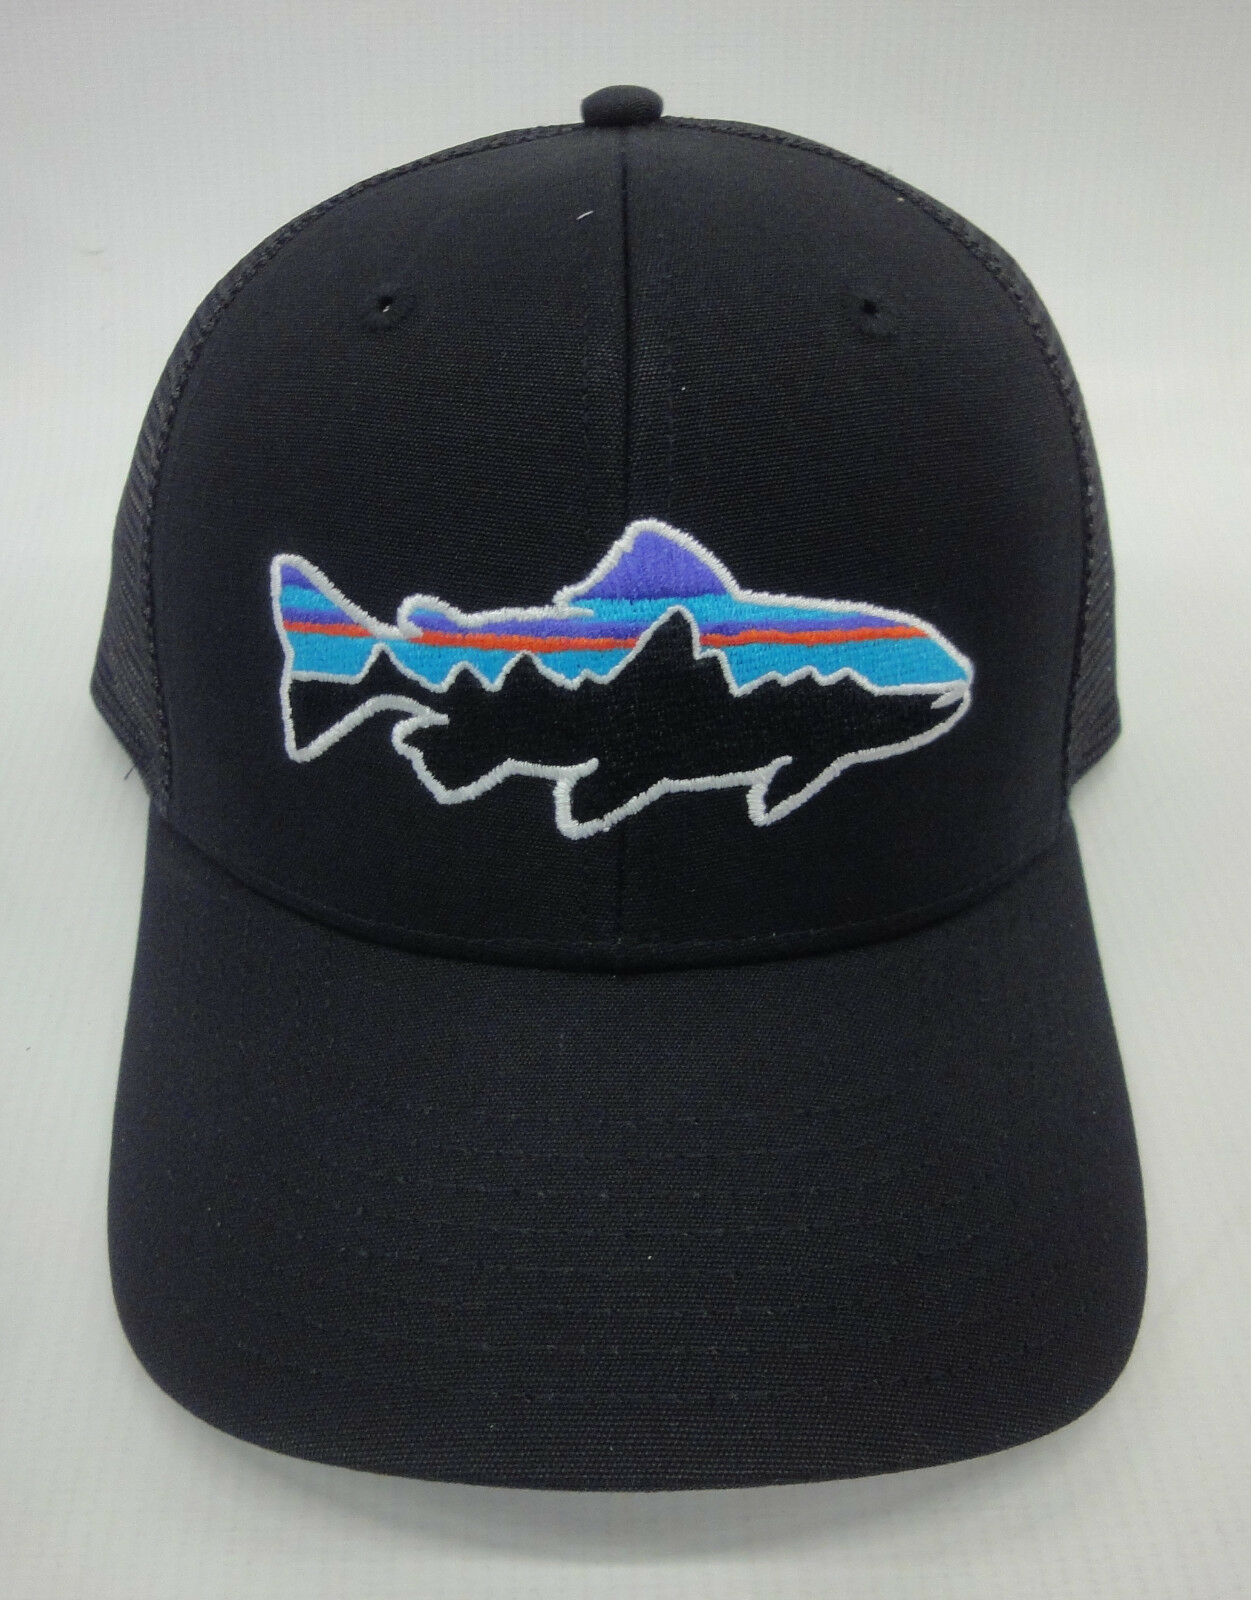 ... UPC 888336467229 product image for Patagonia Mens Fitz Roy Trout  Trucker Snapback Cap hat 38008 a1a6e434adad